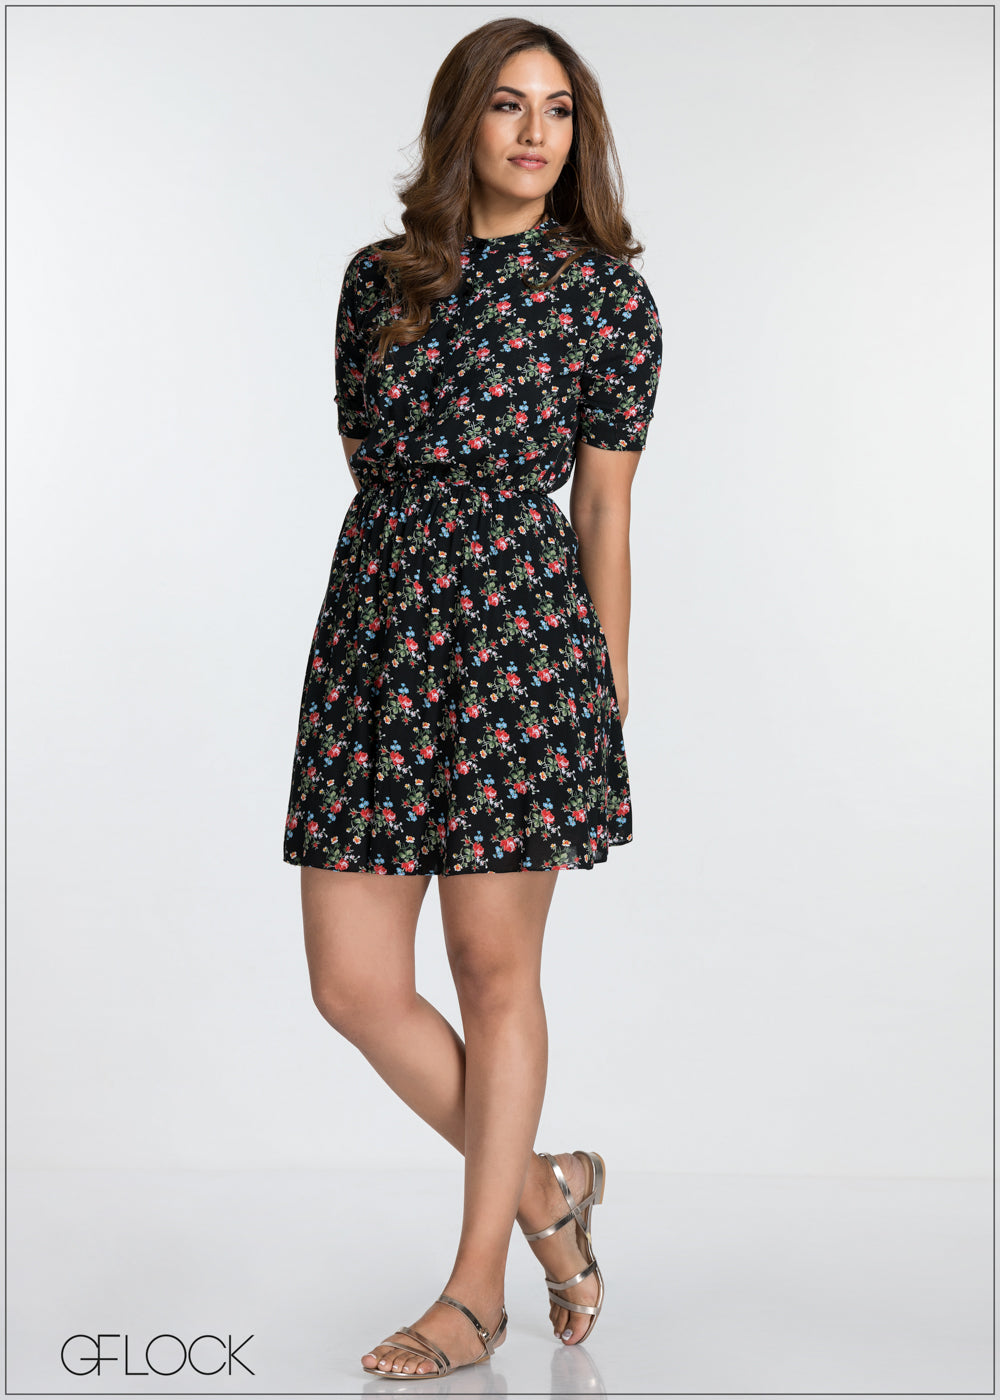 Floral Print Waist Gathered Dress - GFLOCK.LK